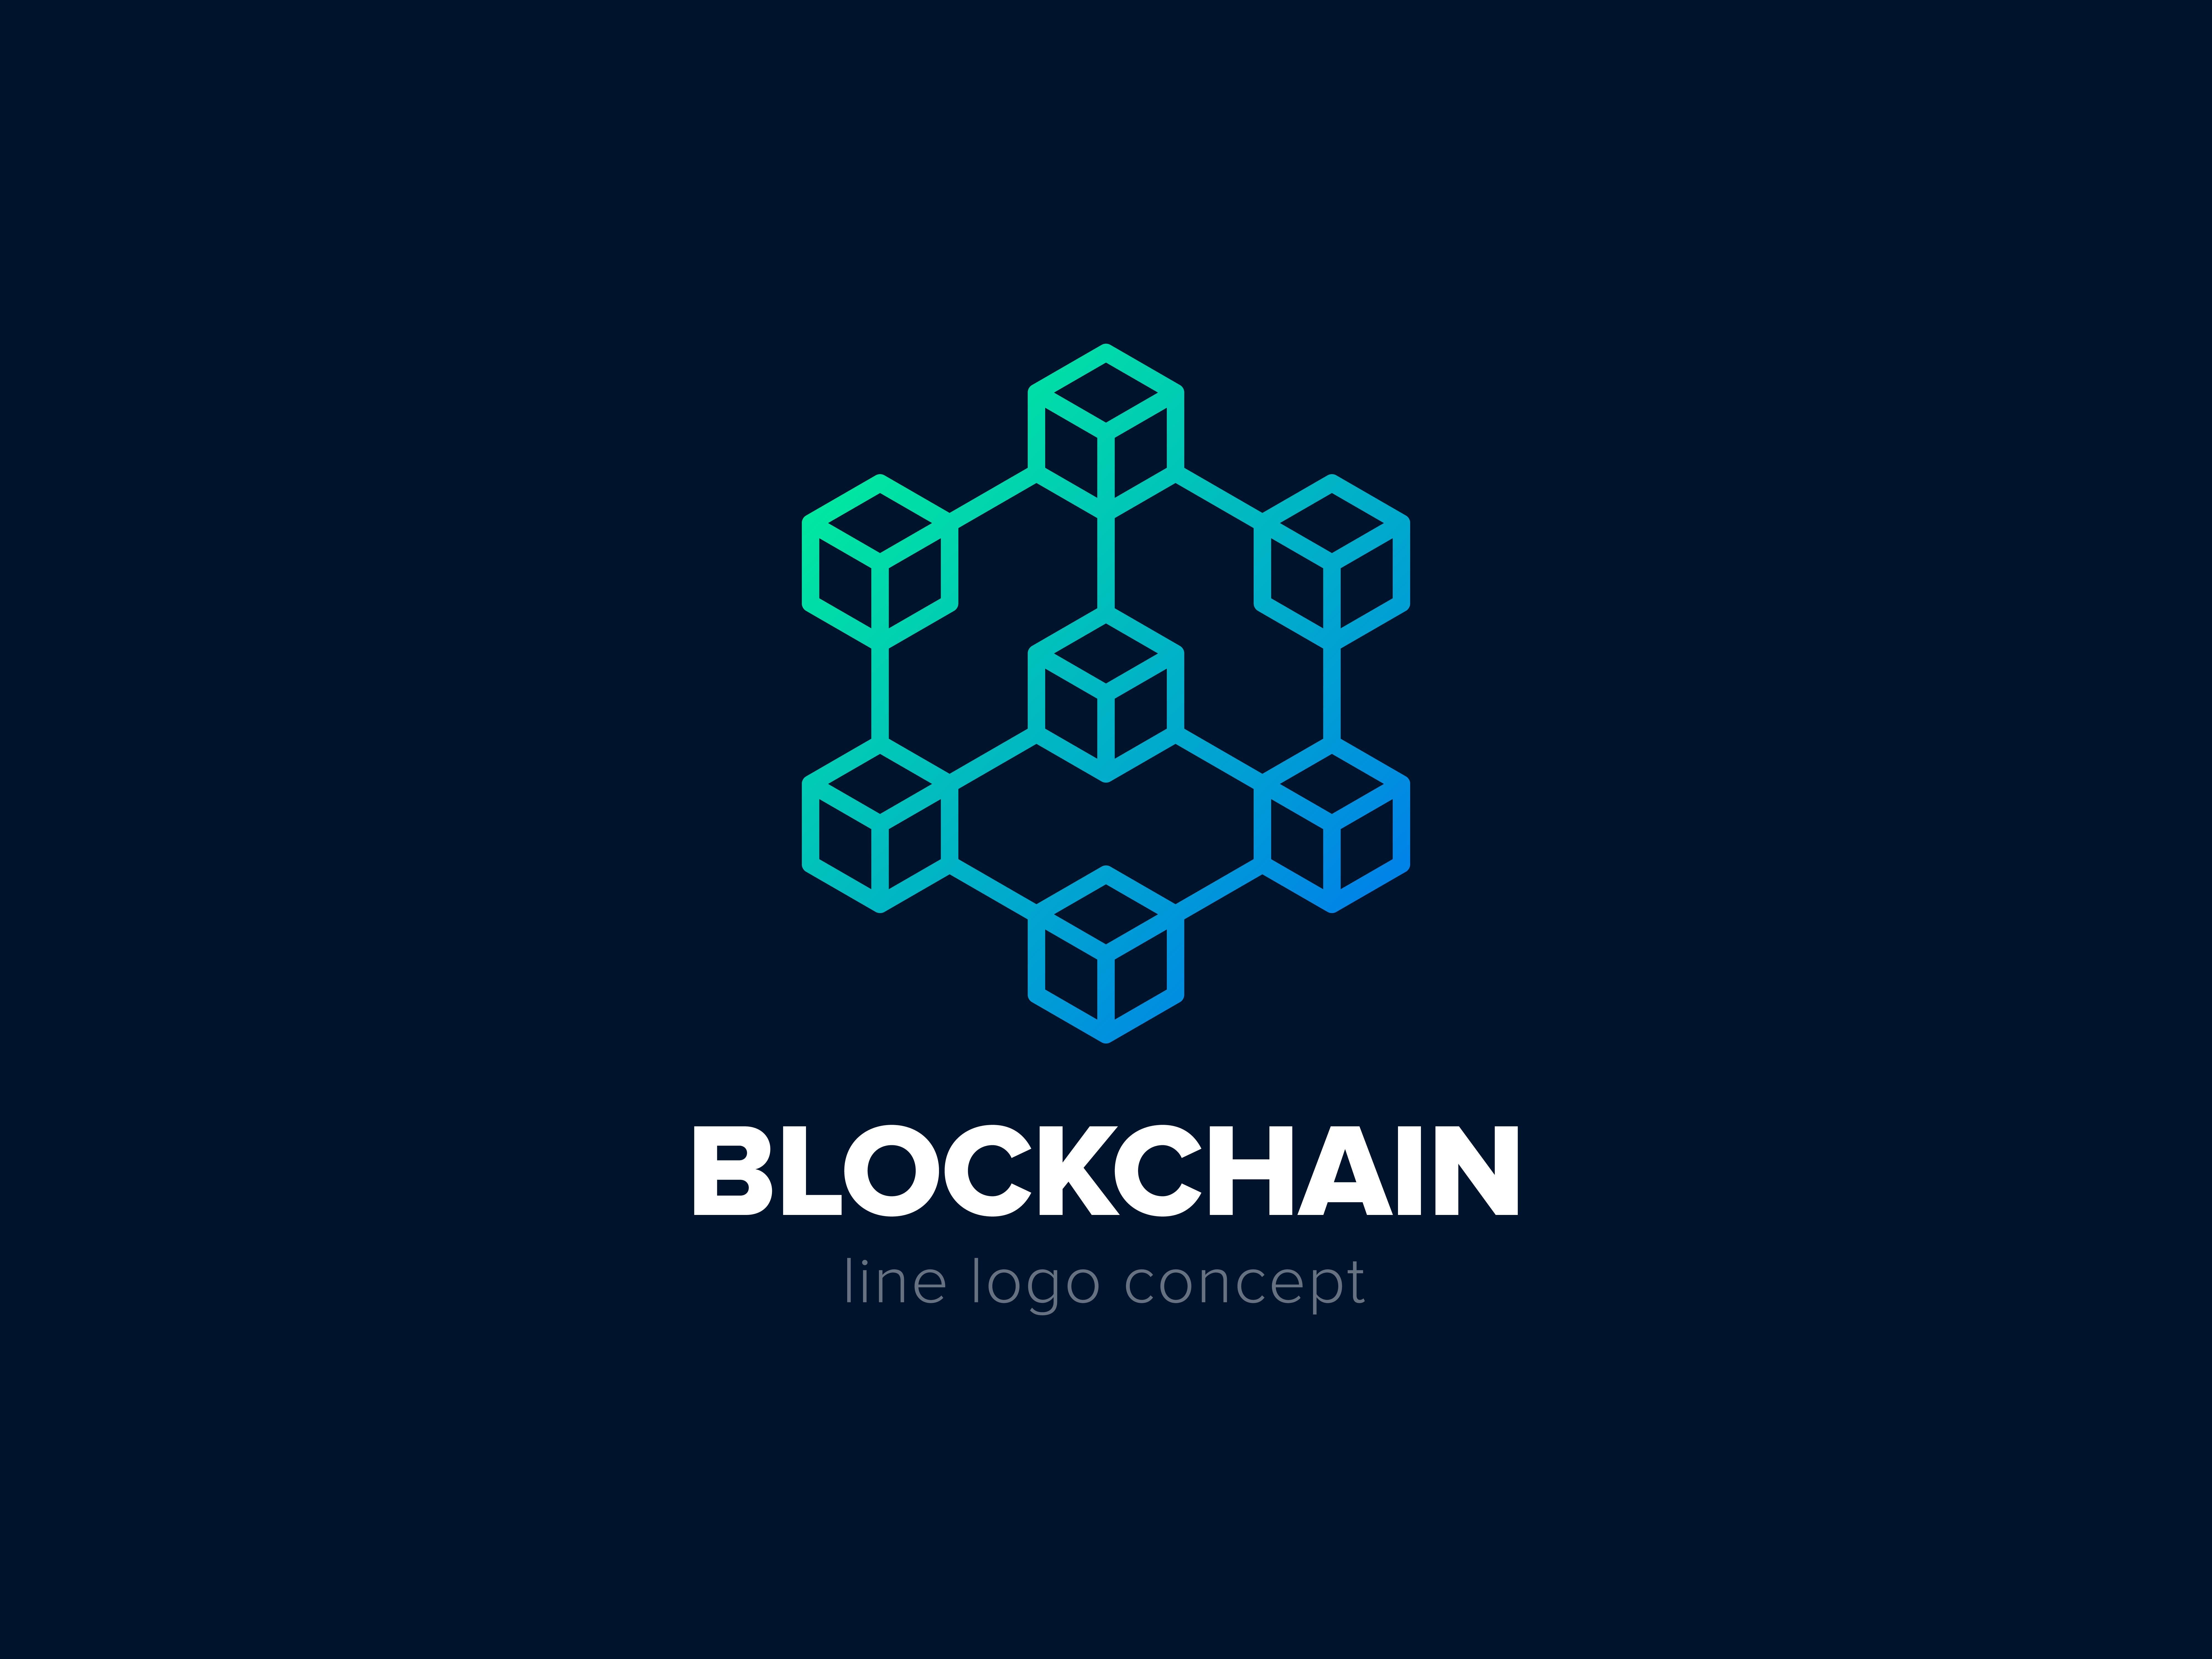 Blockchain Training in Nairobi for Beginners-Bitcoin training-introduction to cryptocurrency-ico-ethereum-hyperledger-smart contracts training